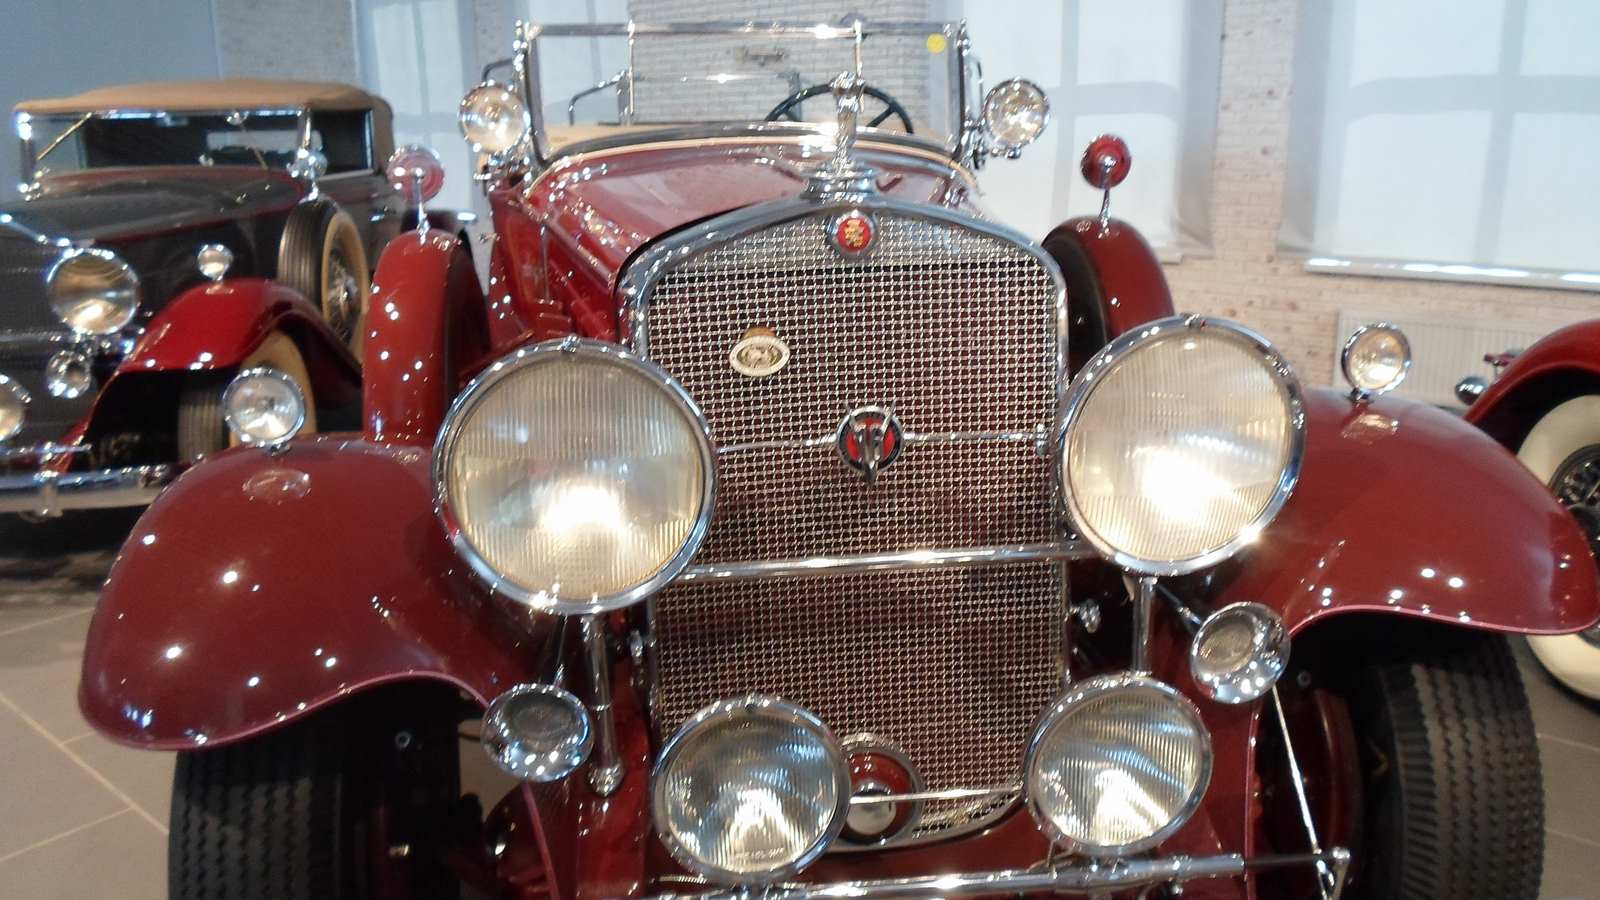 1930-1931. Cadillac 452 V16 Convertible Coupe by Fleetwood